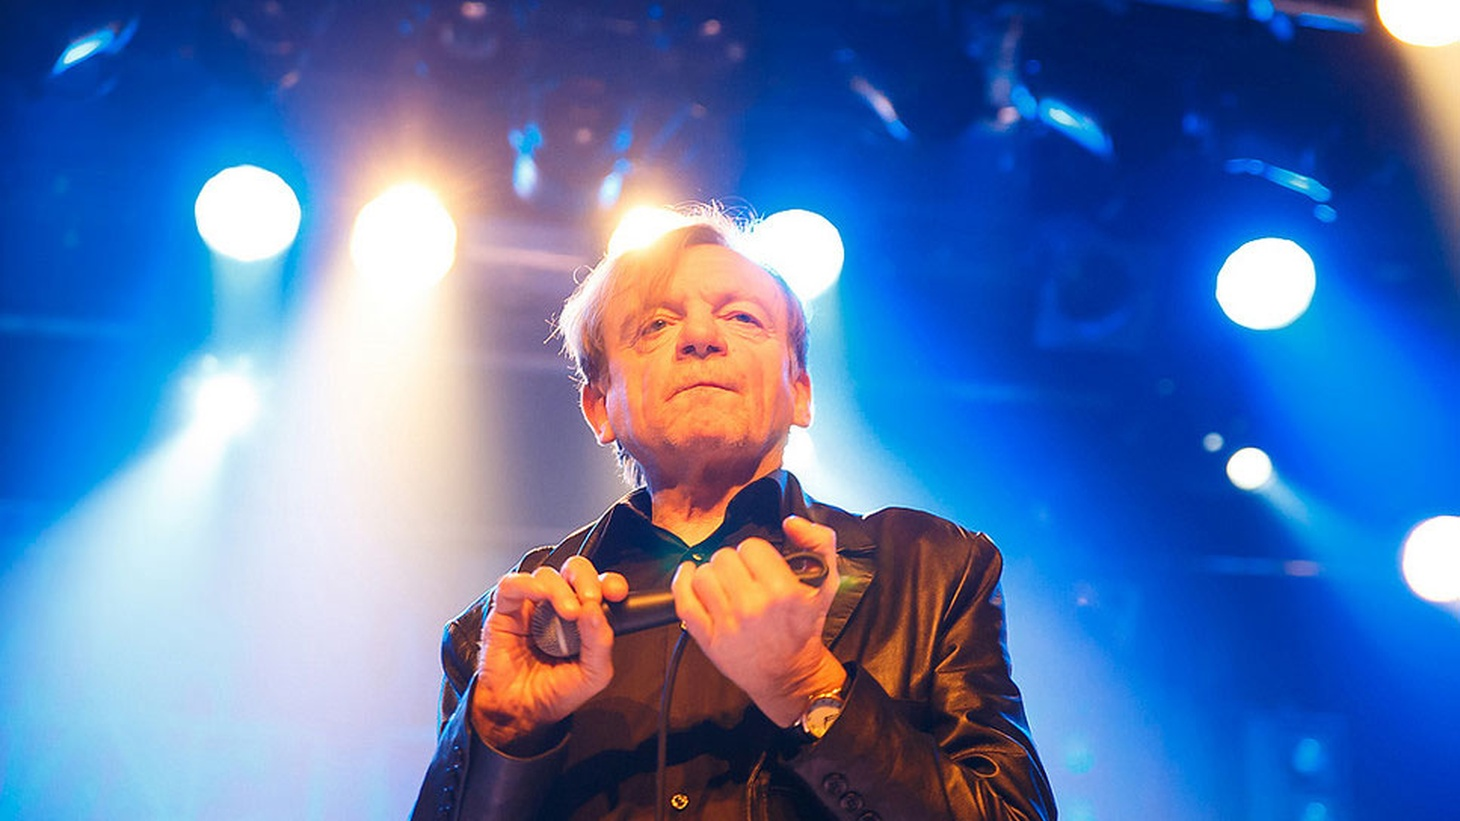 A musical tribute to the late Mark E. Smith, former lead singer of The Fall.